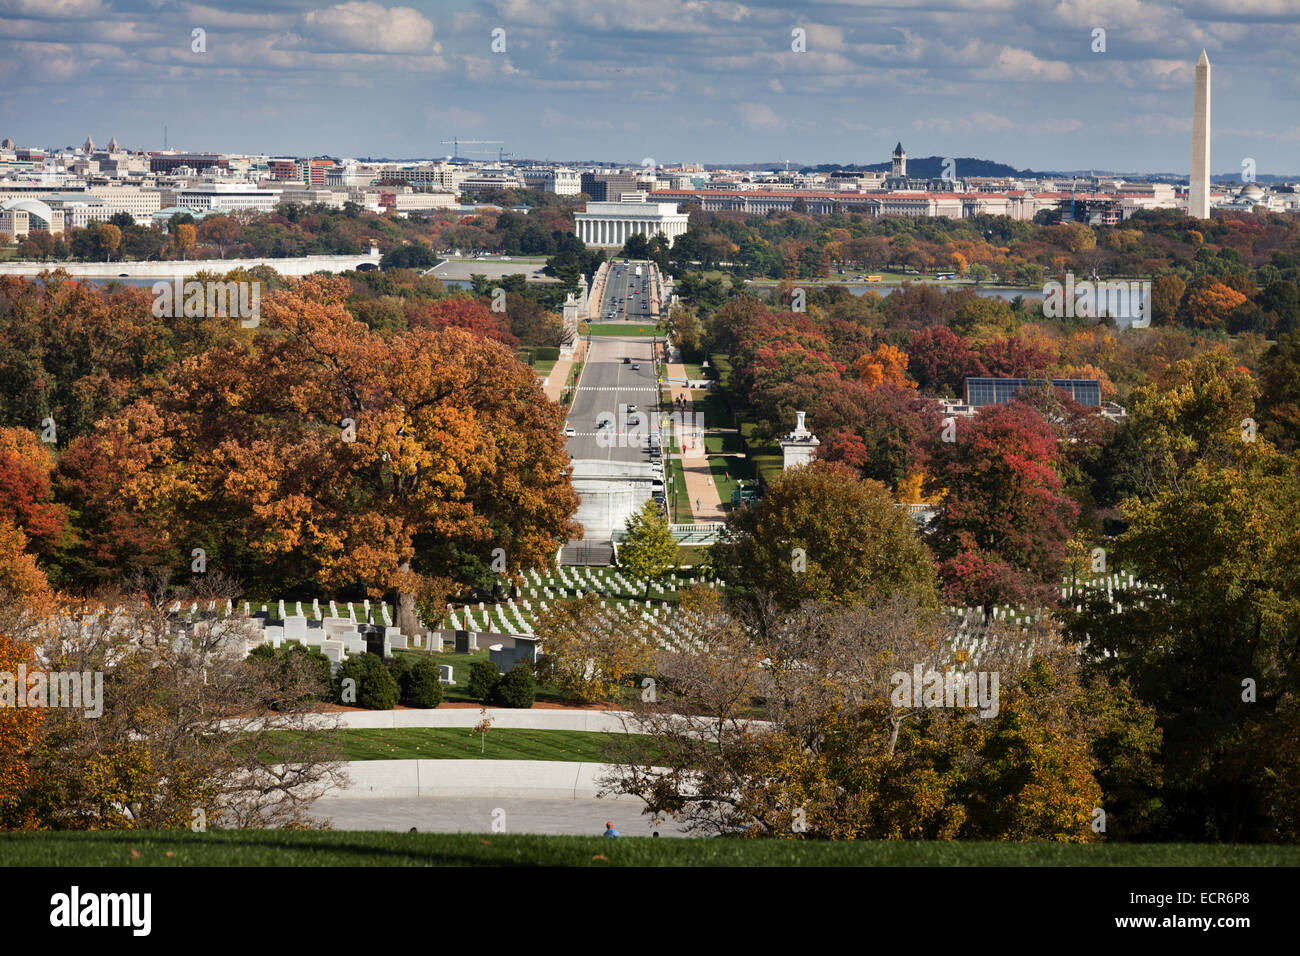 View of Washington DC from Arlington National Cemetery - Stock Image